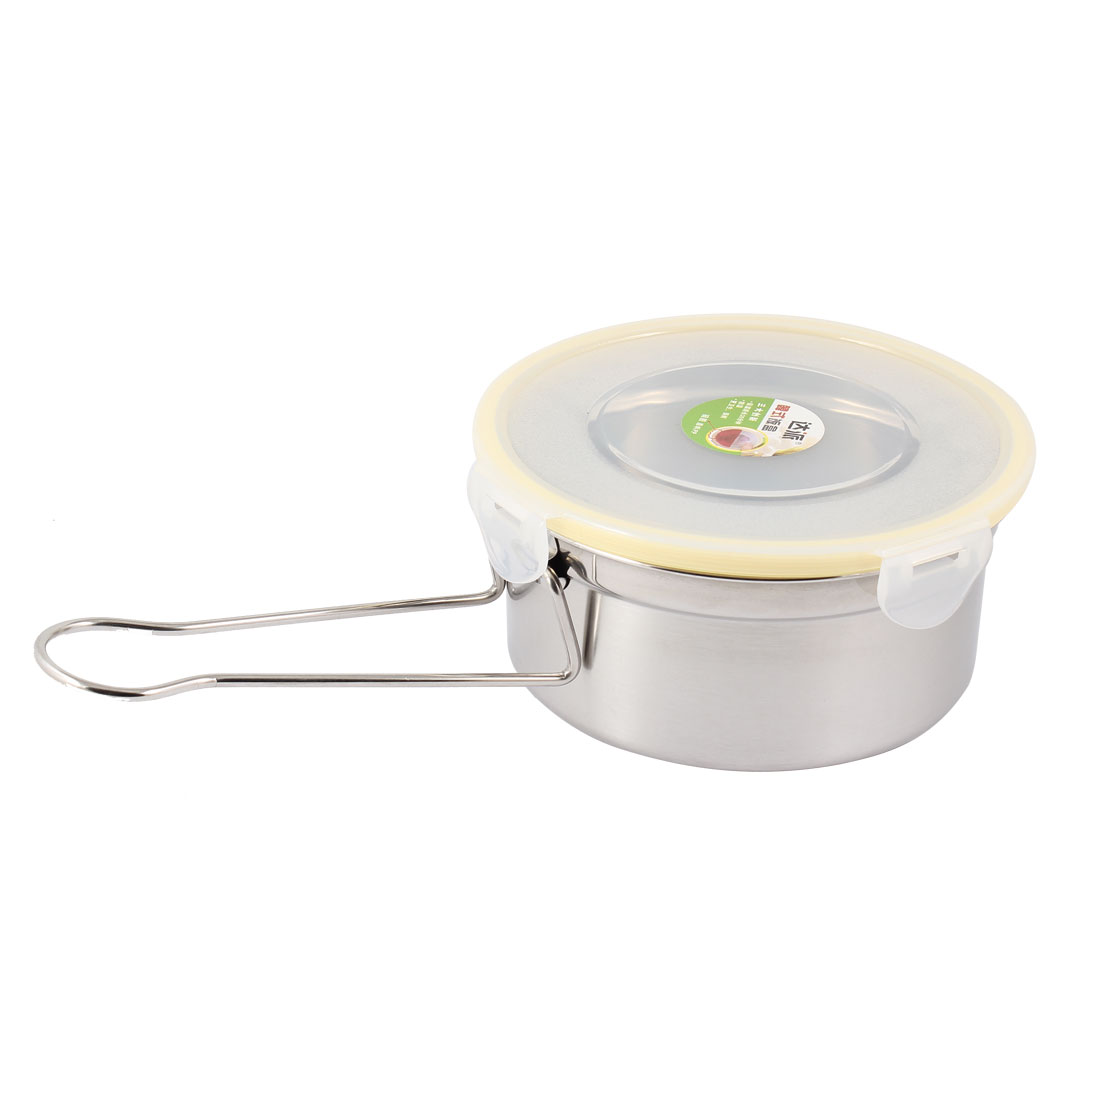 Plastic Cover Rubber Seal Removable Handle Stainless Steel Lunch Box